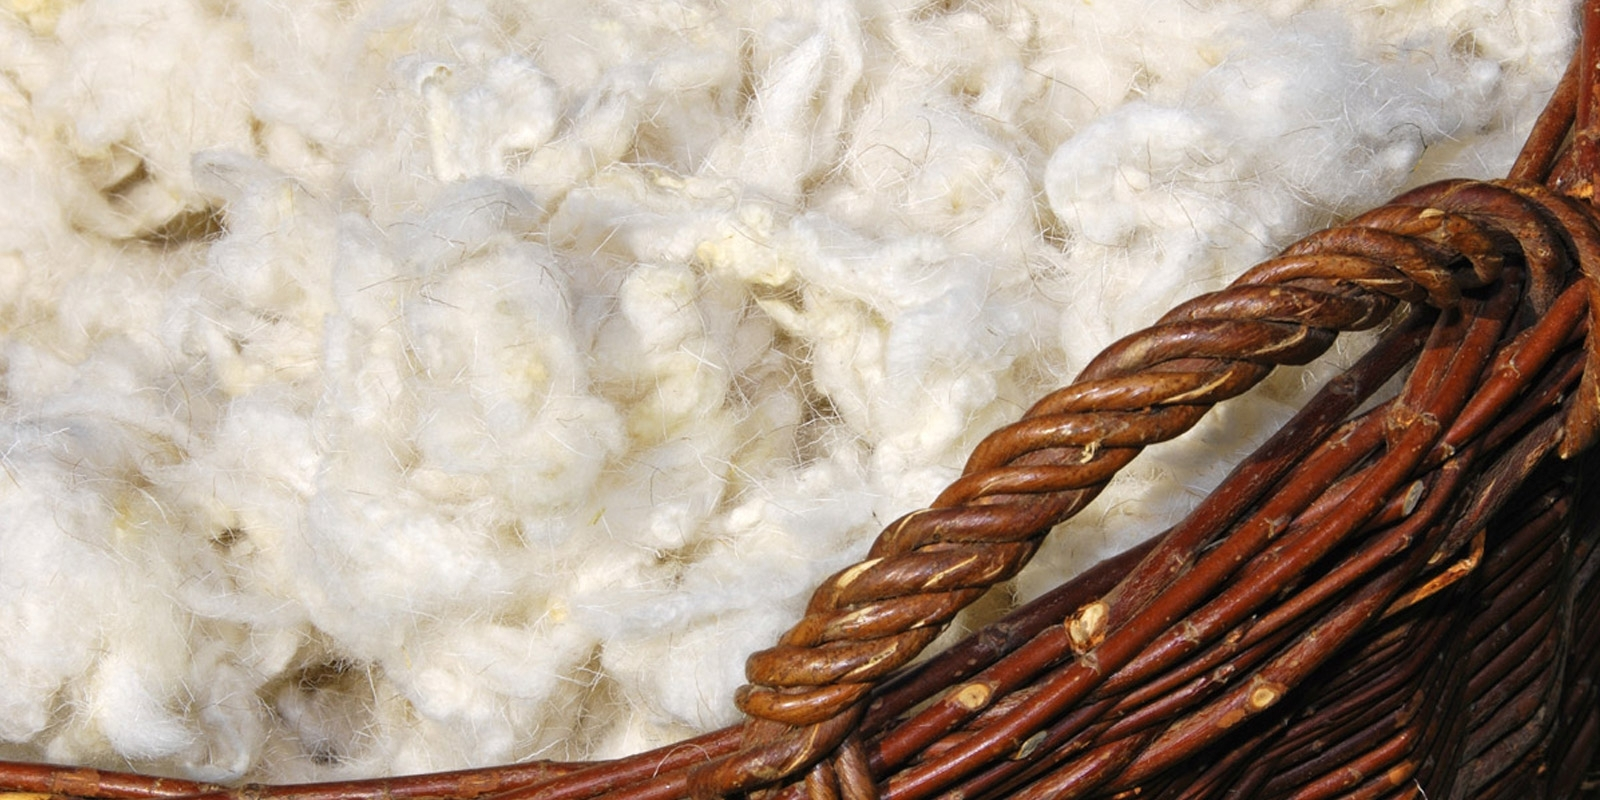 Wool The Natural Fire Retardant